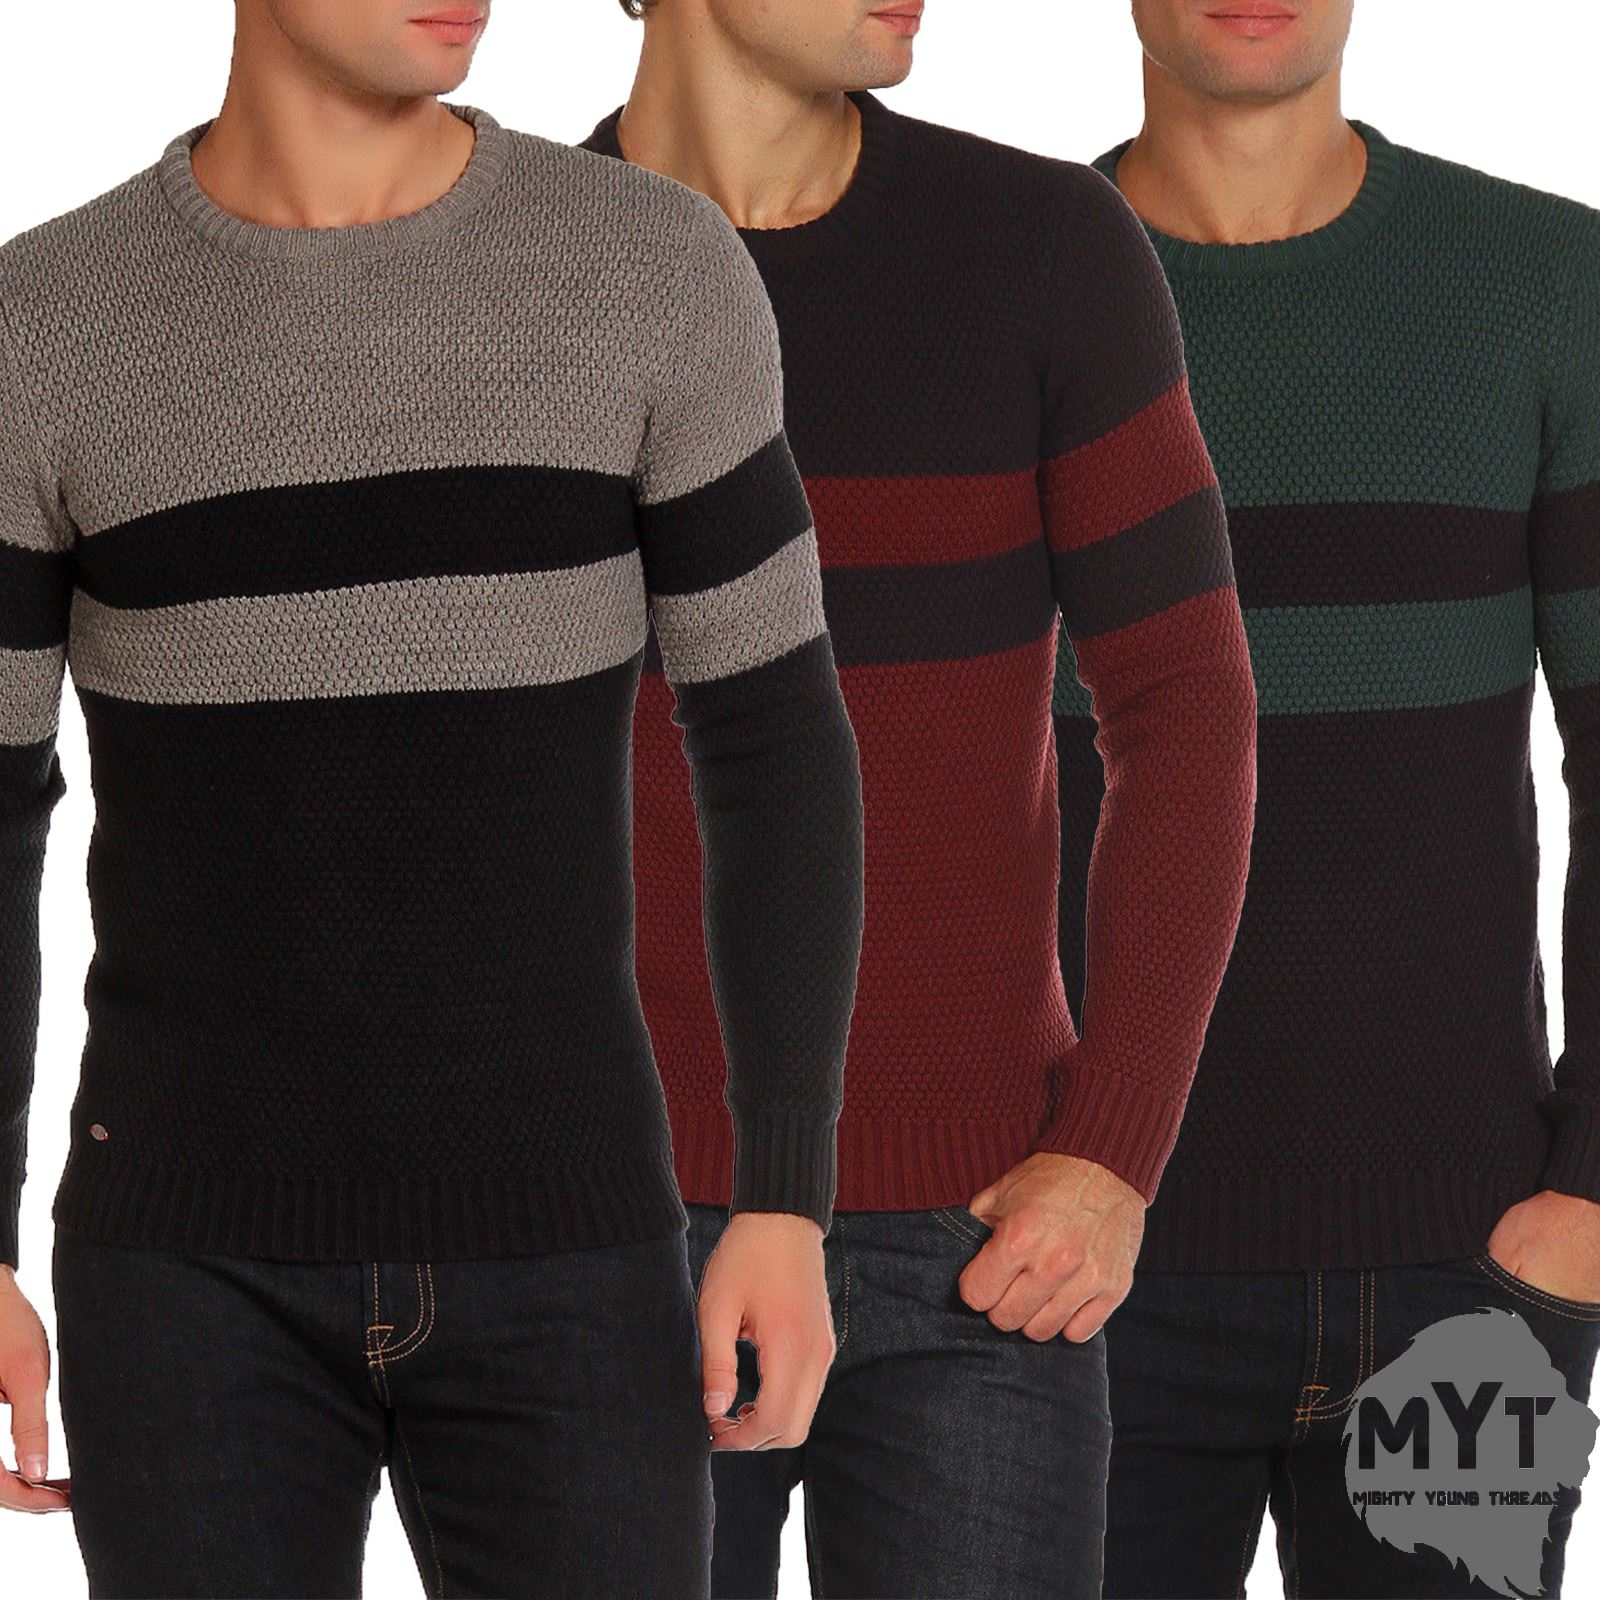 Le-Shark-Designer-Mens-Jumper-Crew-Neck-Wool-Fashion-Knitwear-Sweater thumbnail 7